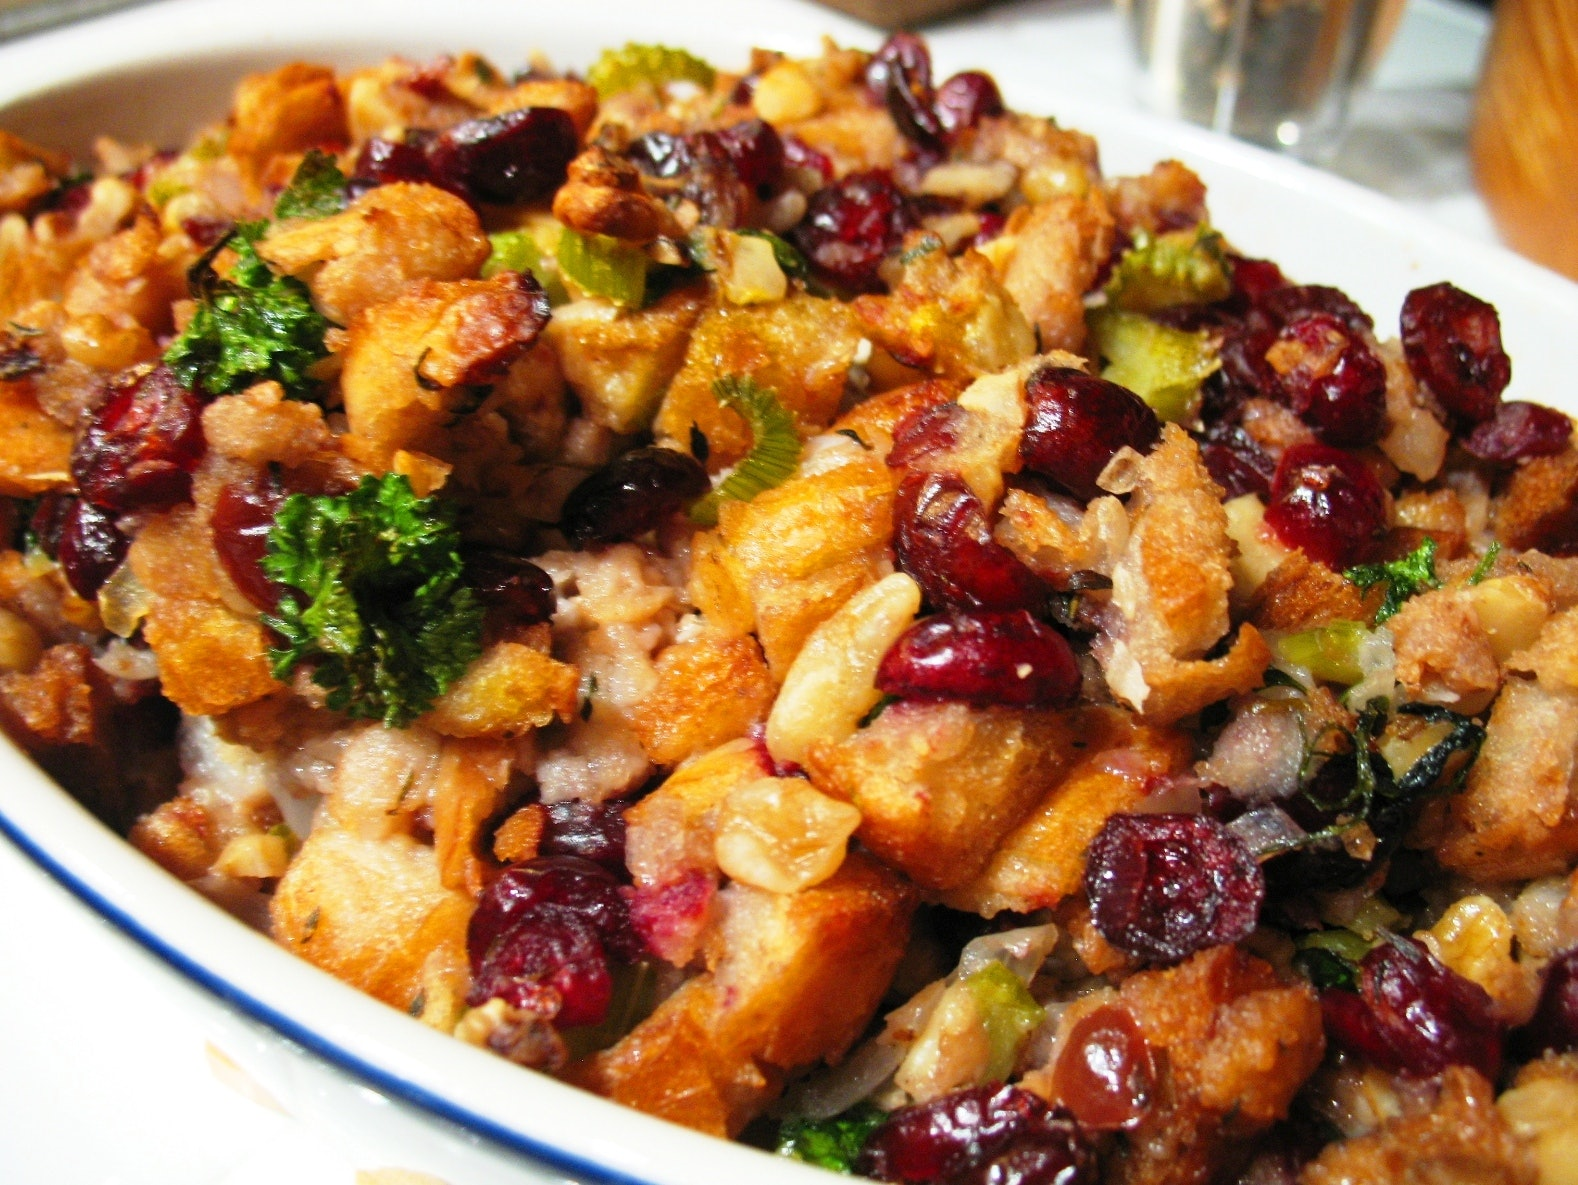 stuffing thanksgiving bread recipes fashioned recipe cranberry easy vegan sausage walnut dressing holiday table spice turkey yummi scrumptious words favorite